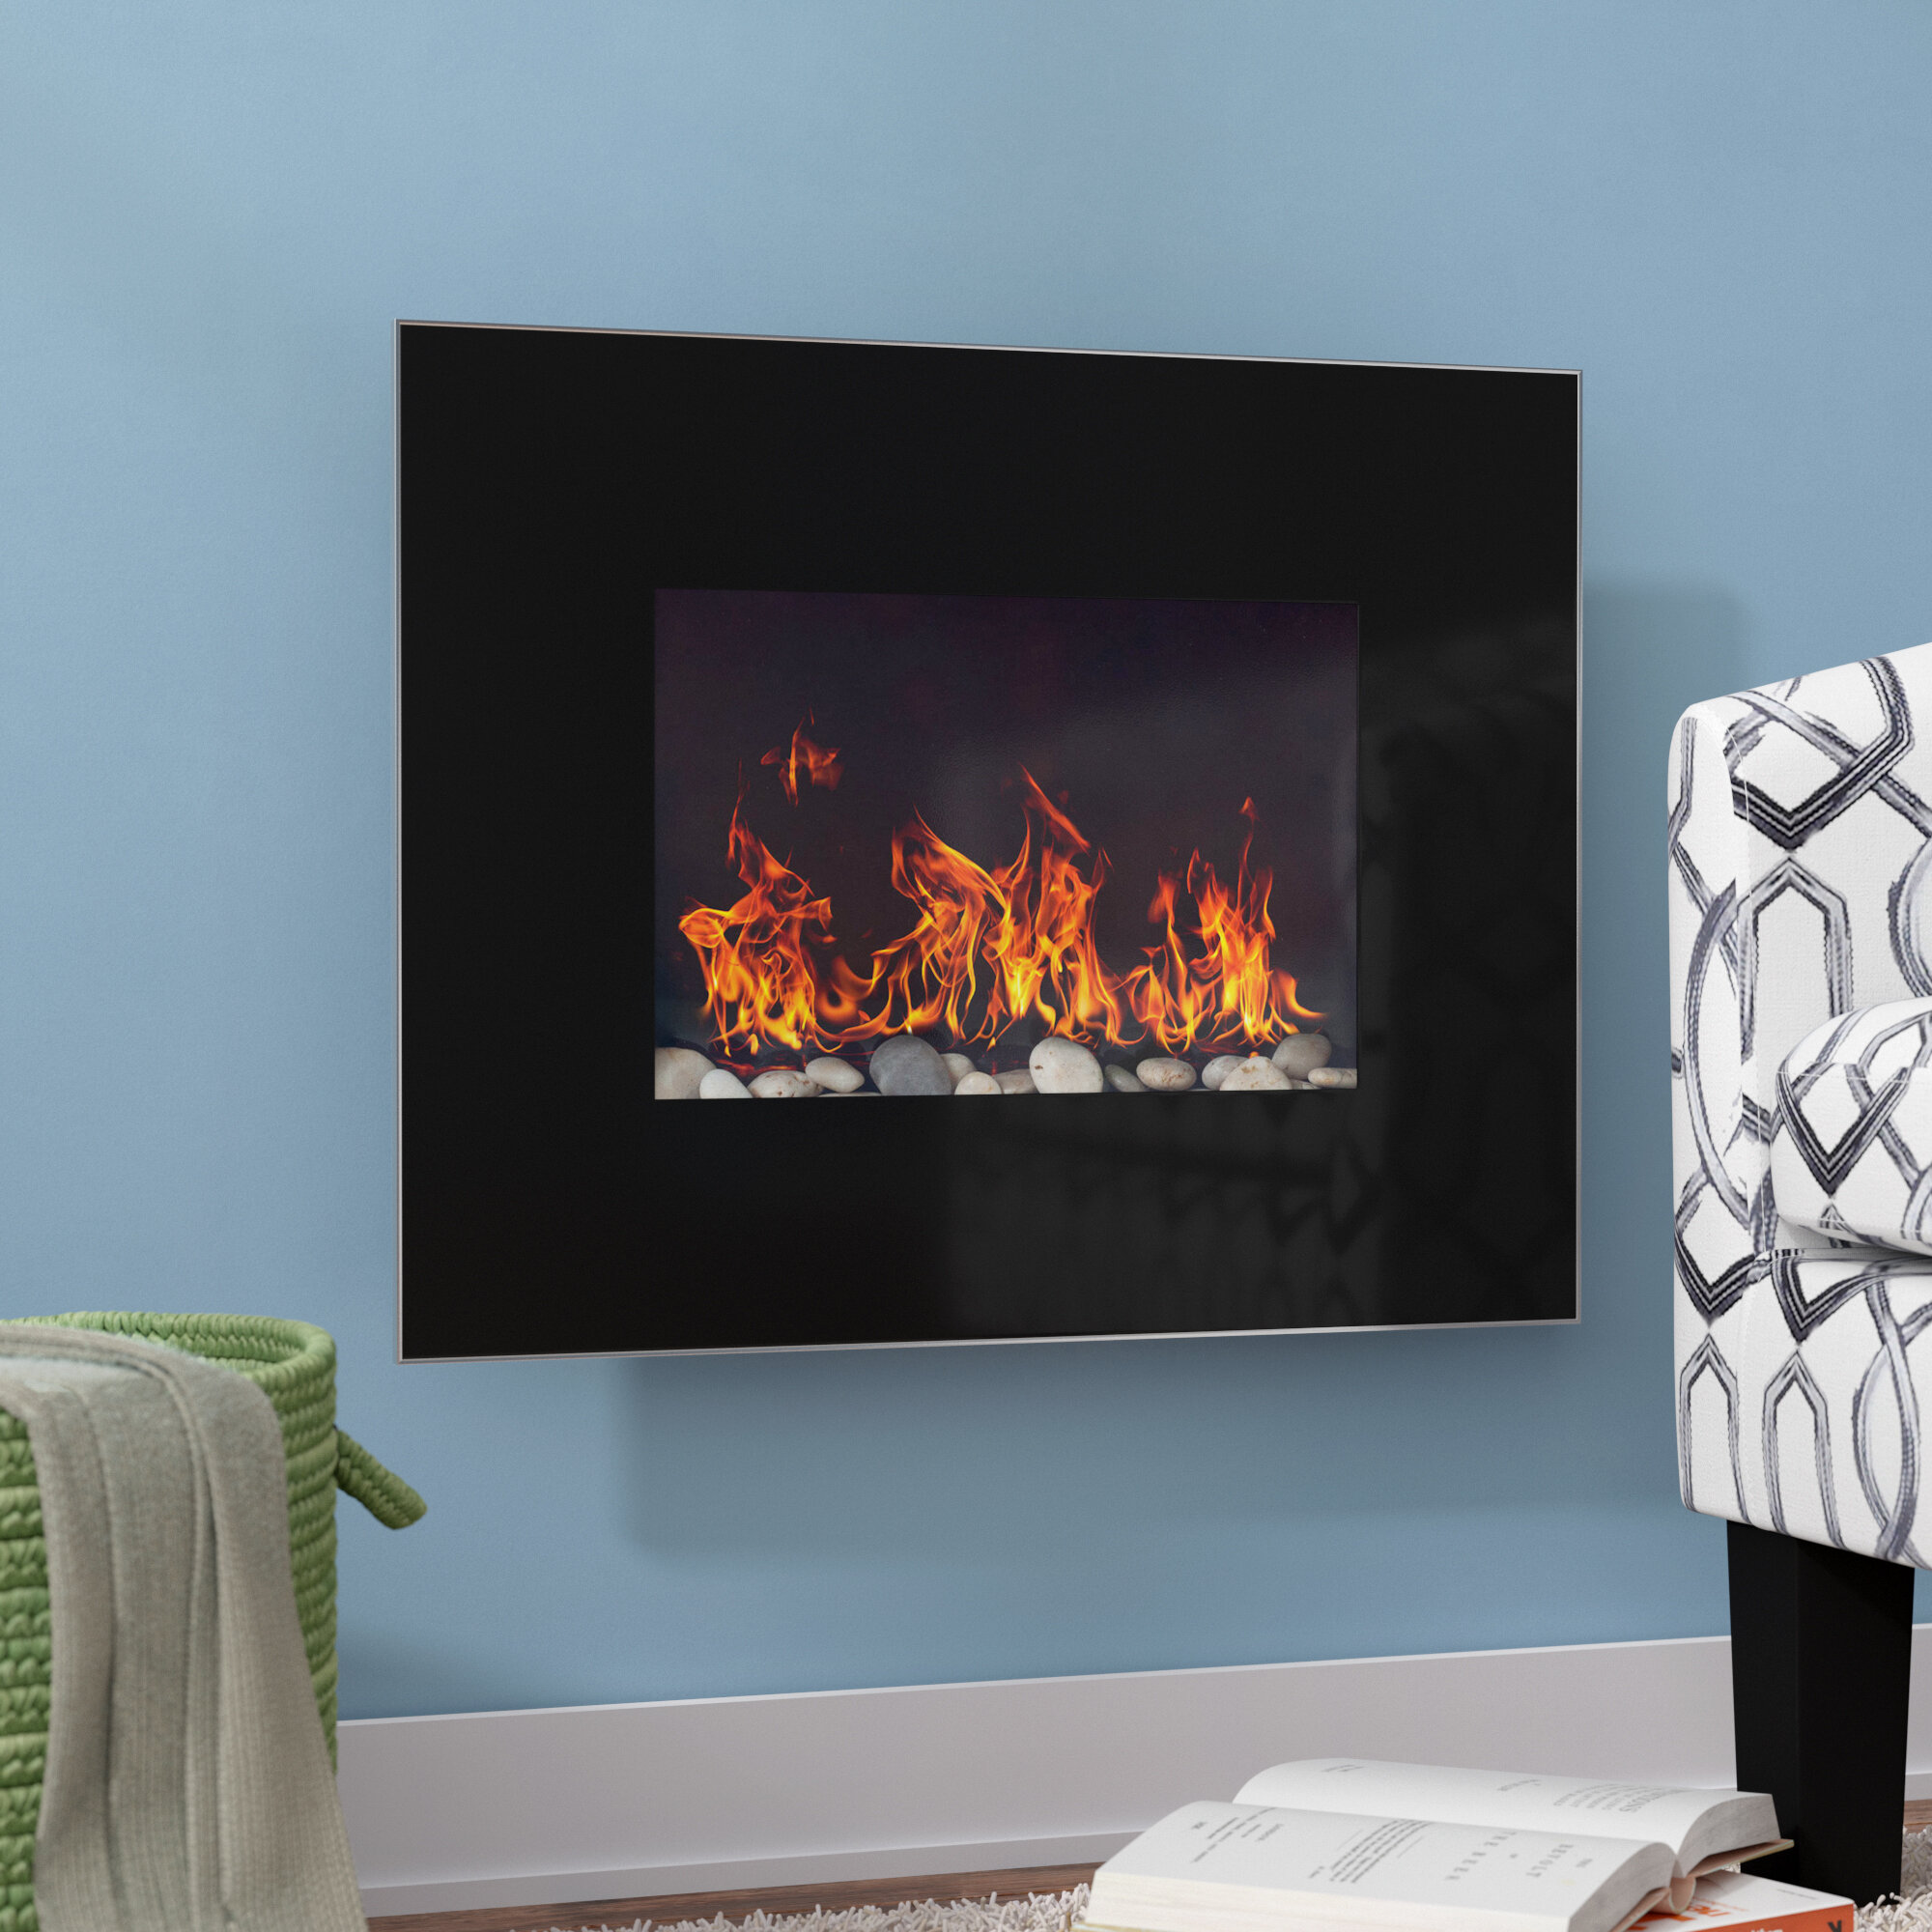 Ebern Designs Bartlow Wall Mounted Electric Fireplace Reviews